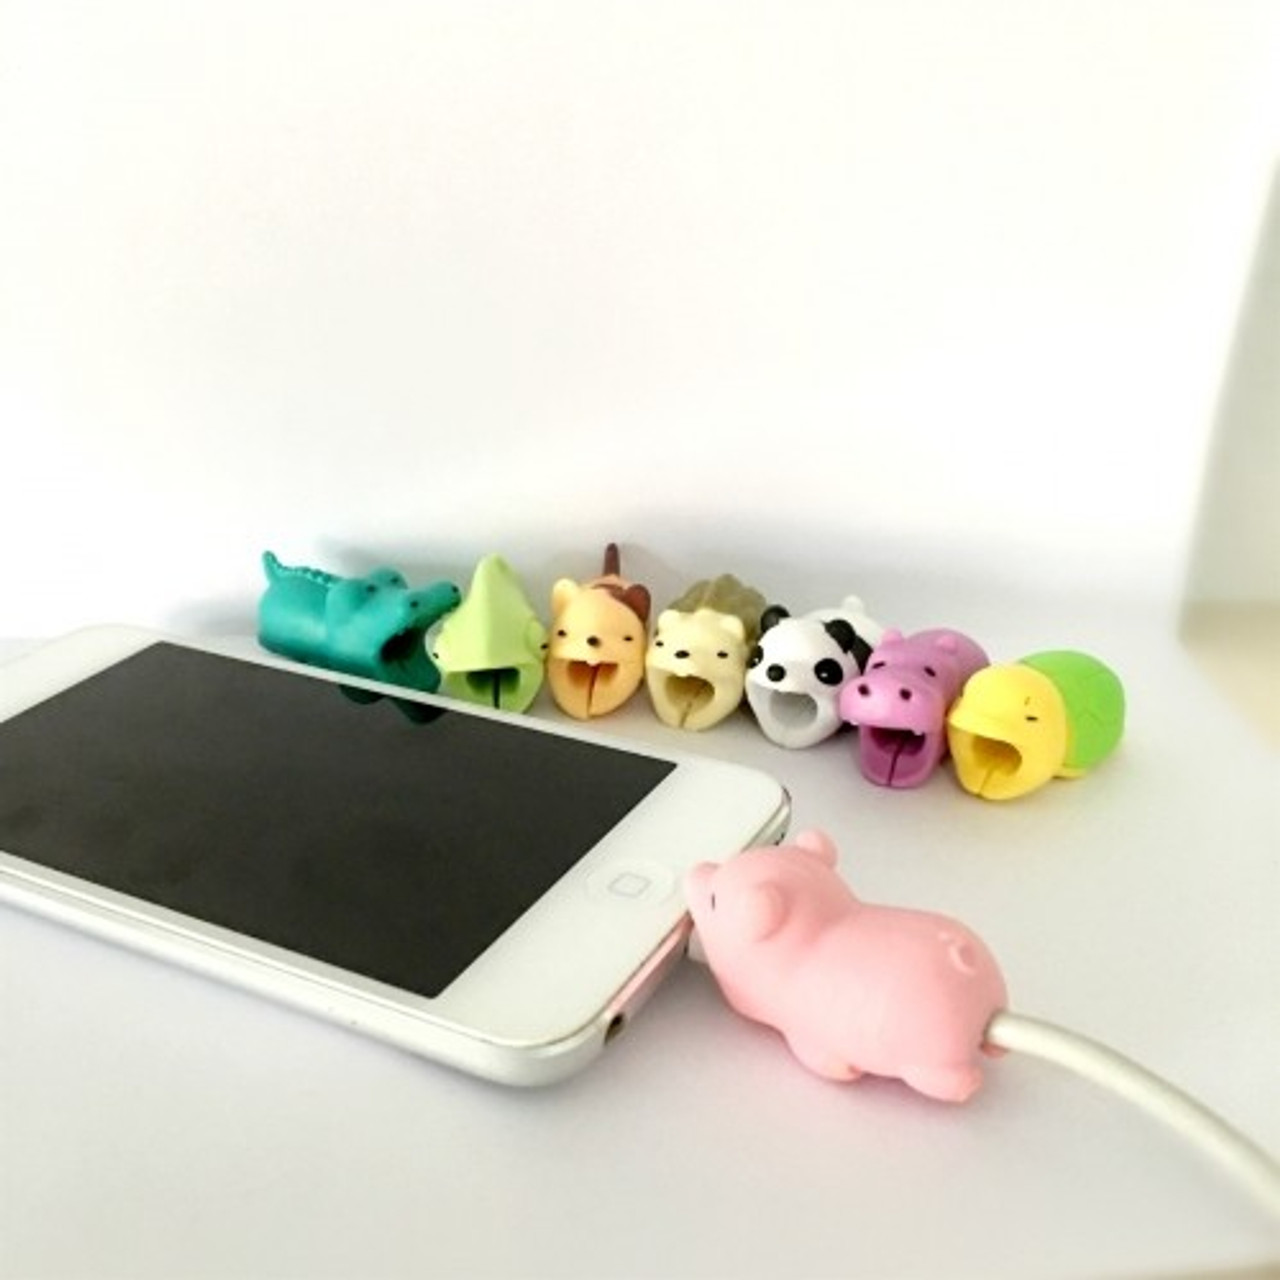 Cute Animal Cord Protector - 5 Styles